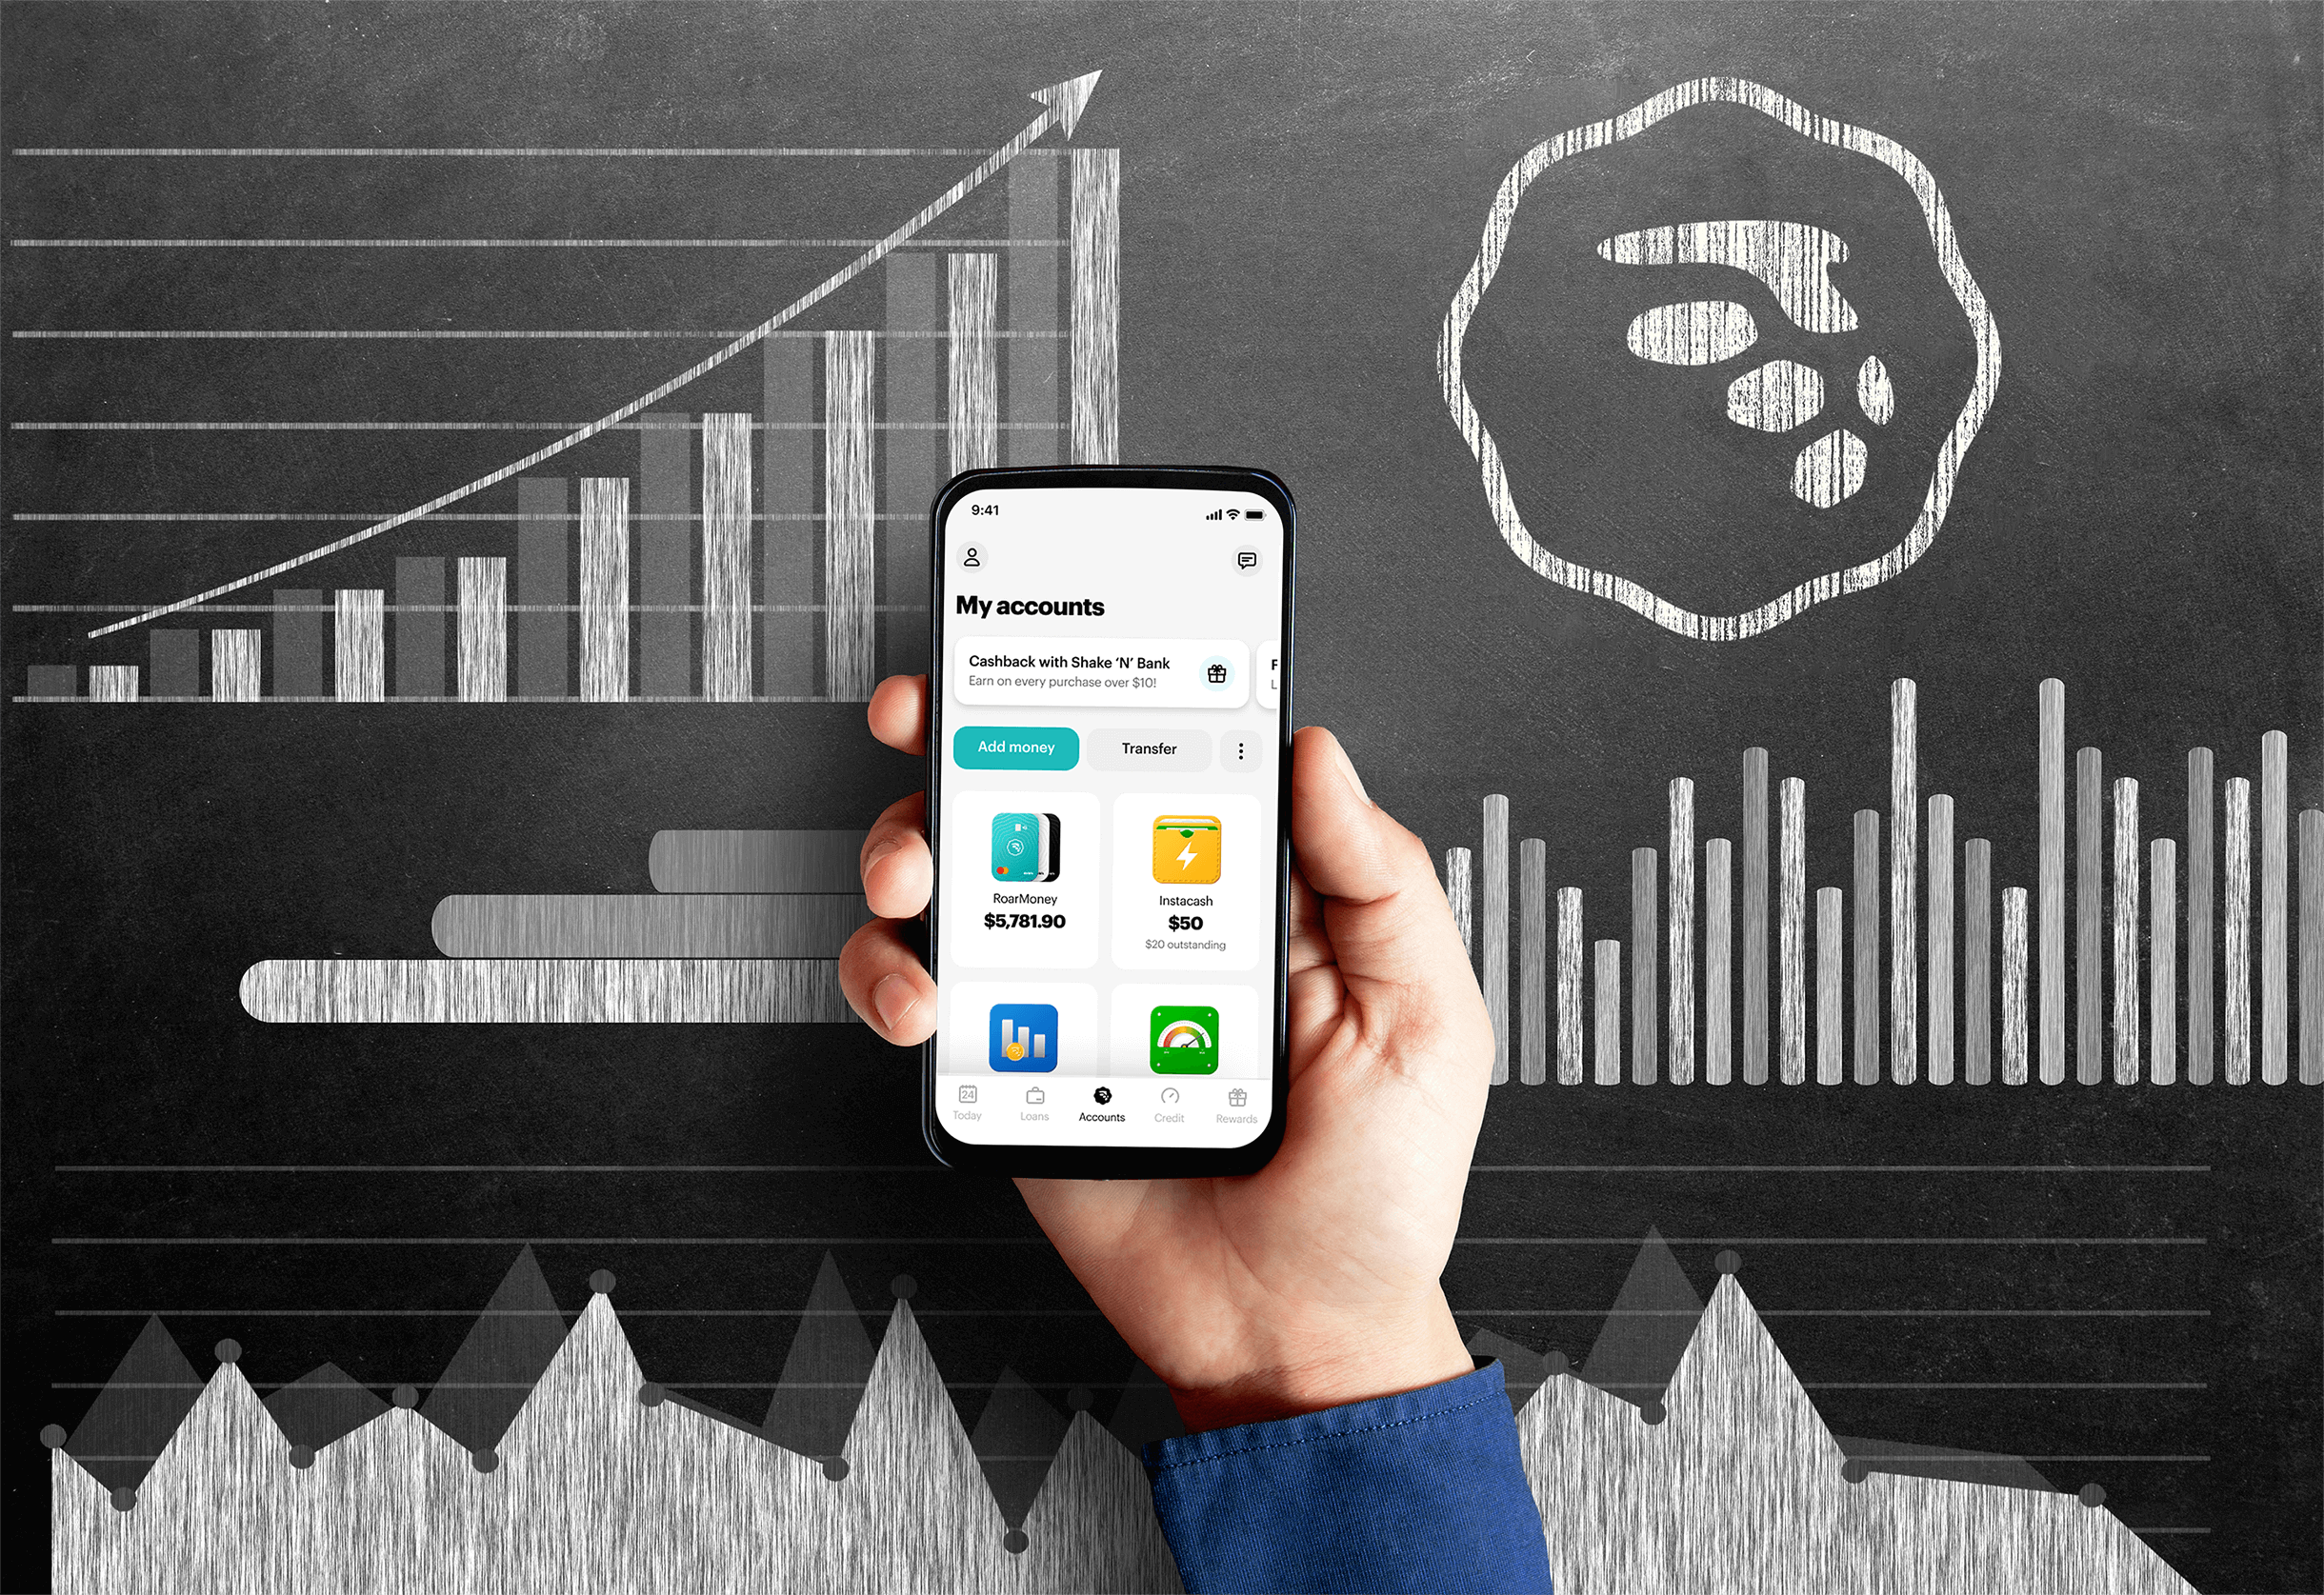 moneylion reports strong first quarter 2021